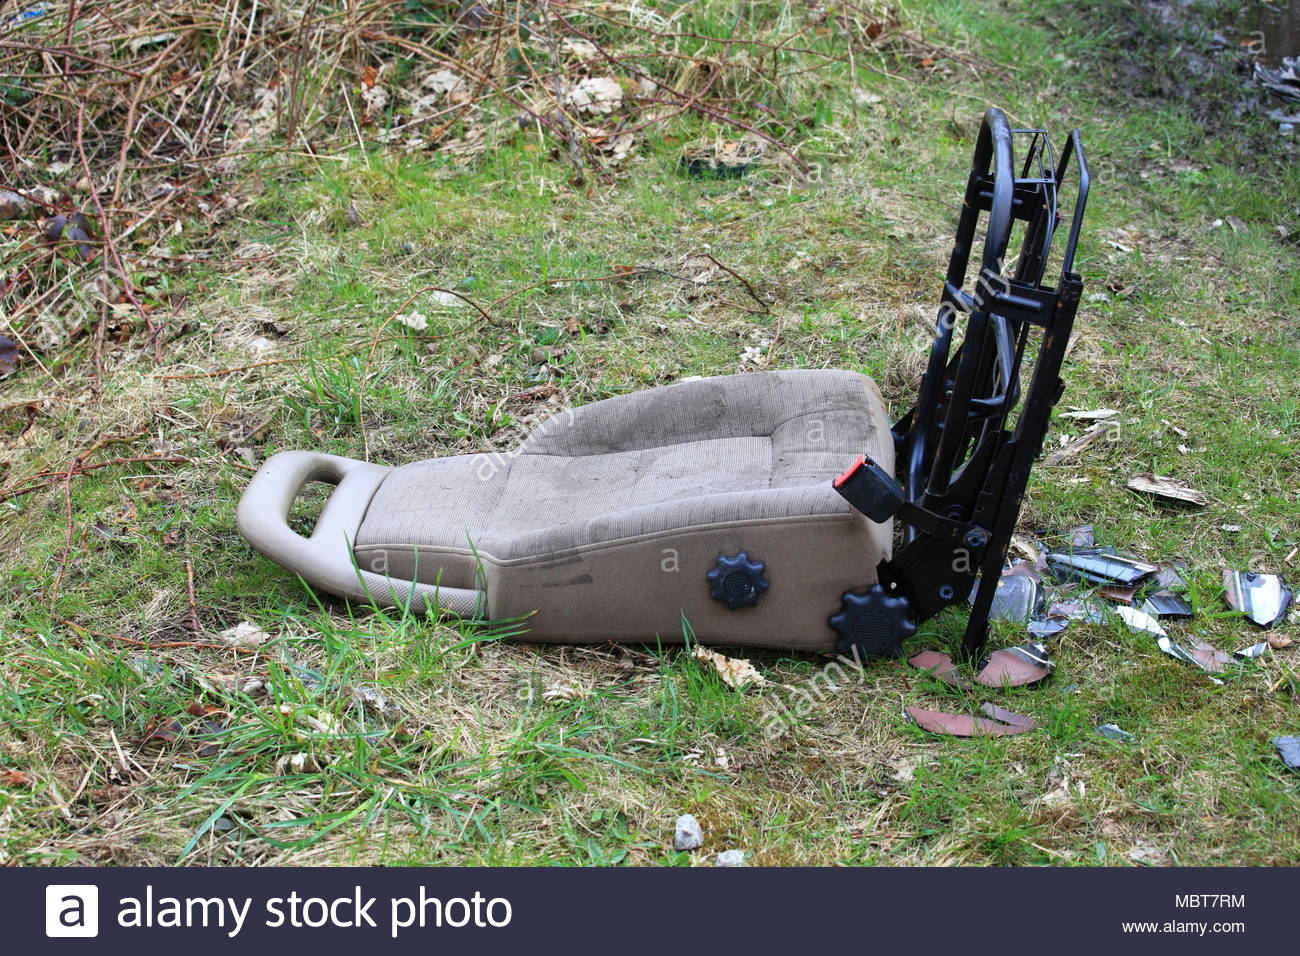 A car seat dumped on recreational ground along the canal in Staybridge Cheshire Tameside England - Stock Image